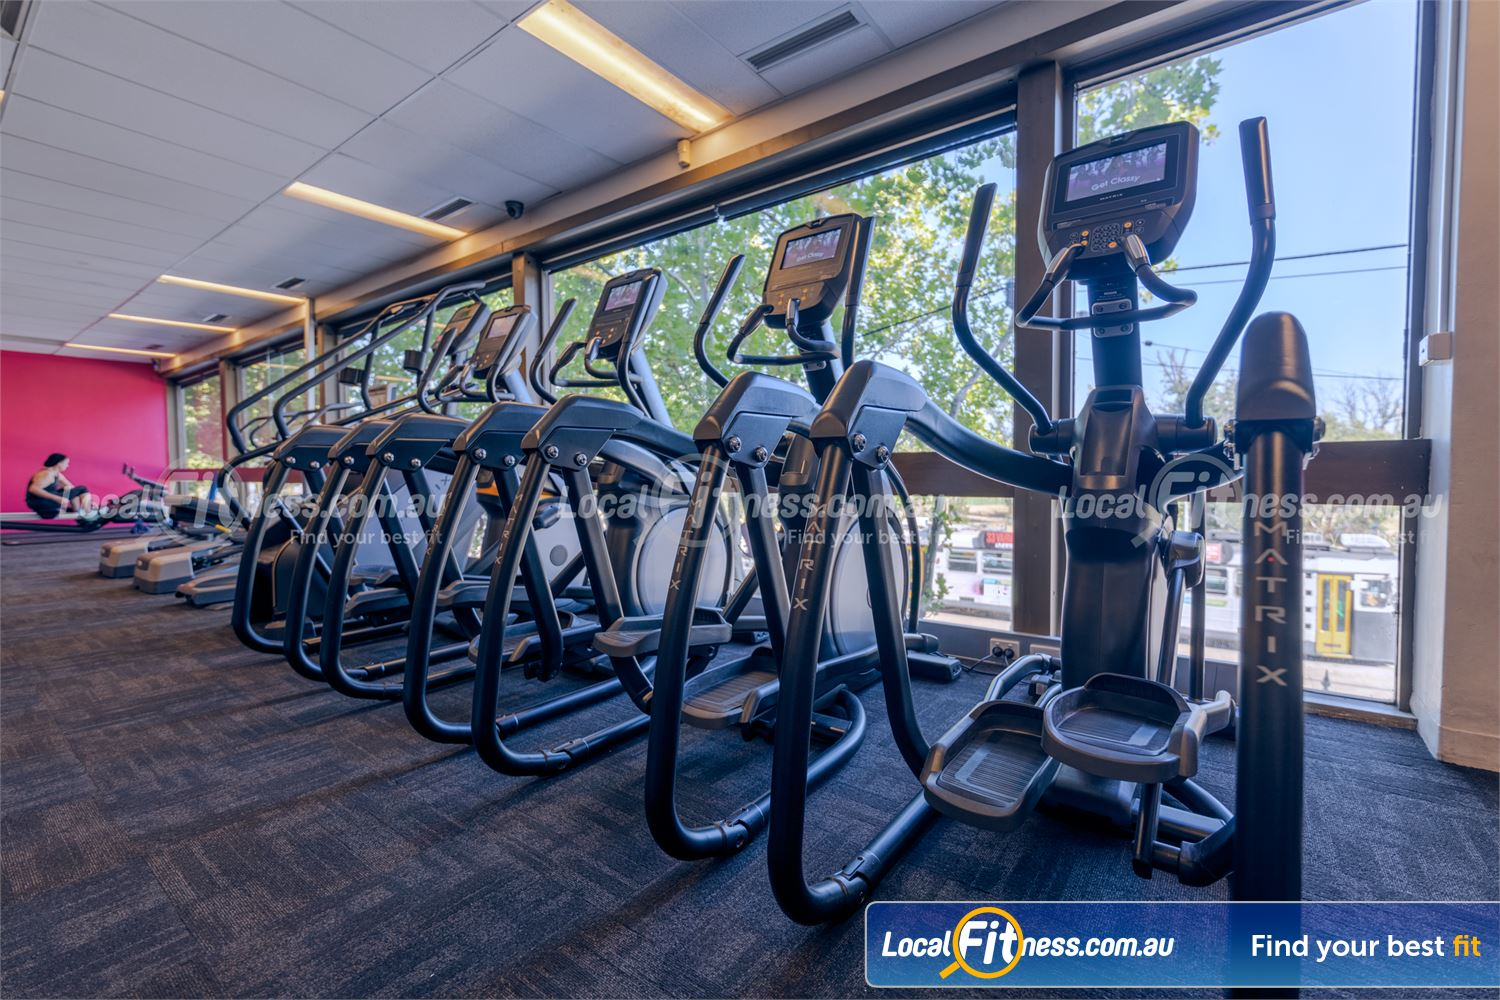 Fernwood Fitness St Kilda Rows of cardio machines so you don't have to wait with 24/7 gym access.